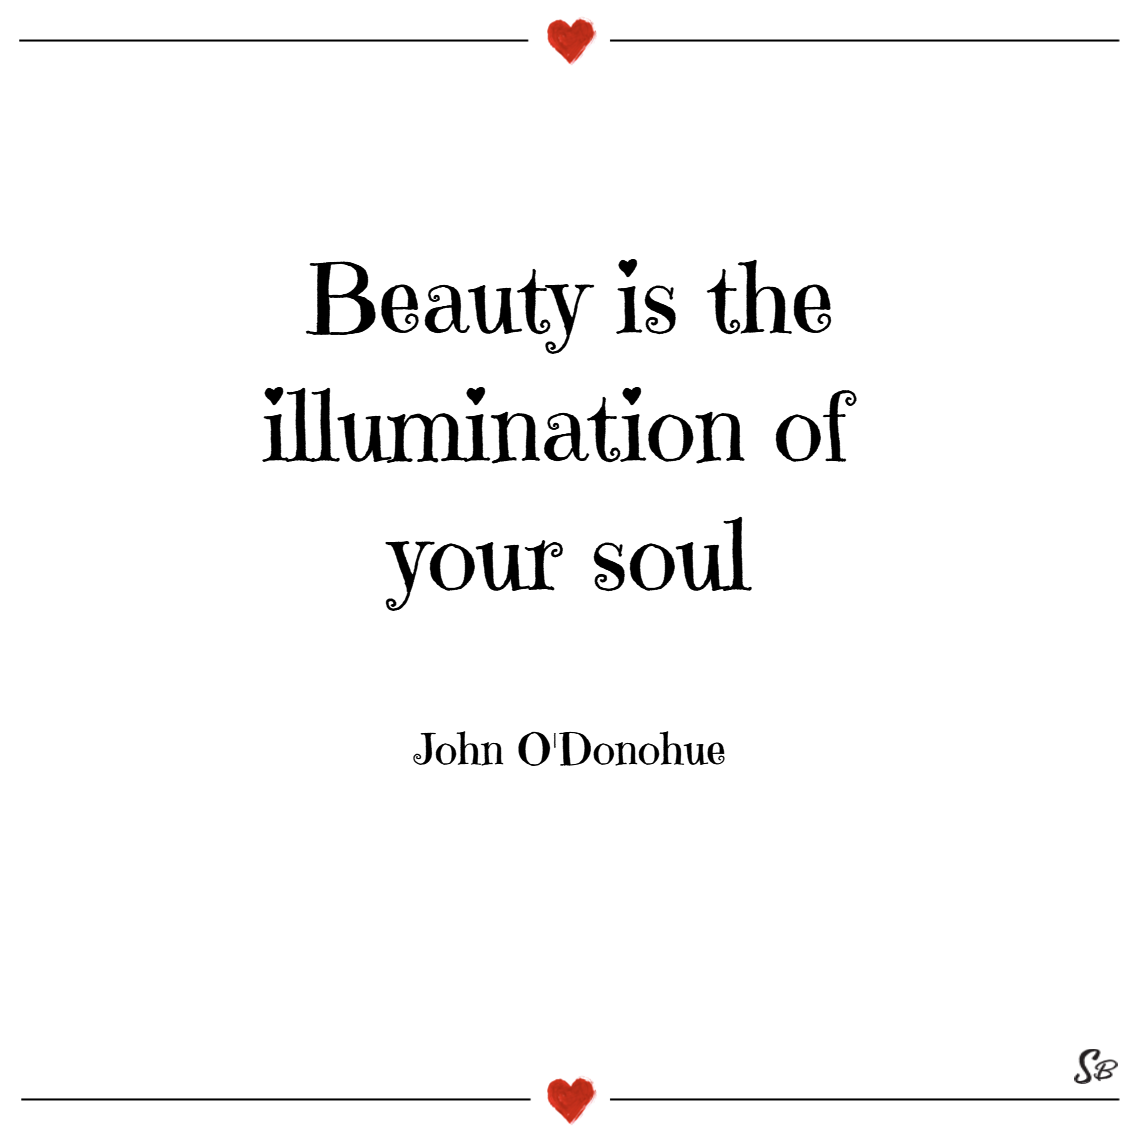 Quotes About Beauty: 31 Incredible Beauty Quotes That Will Melt Your Heart